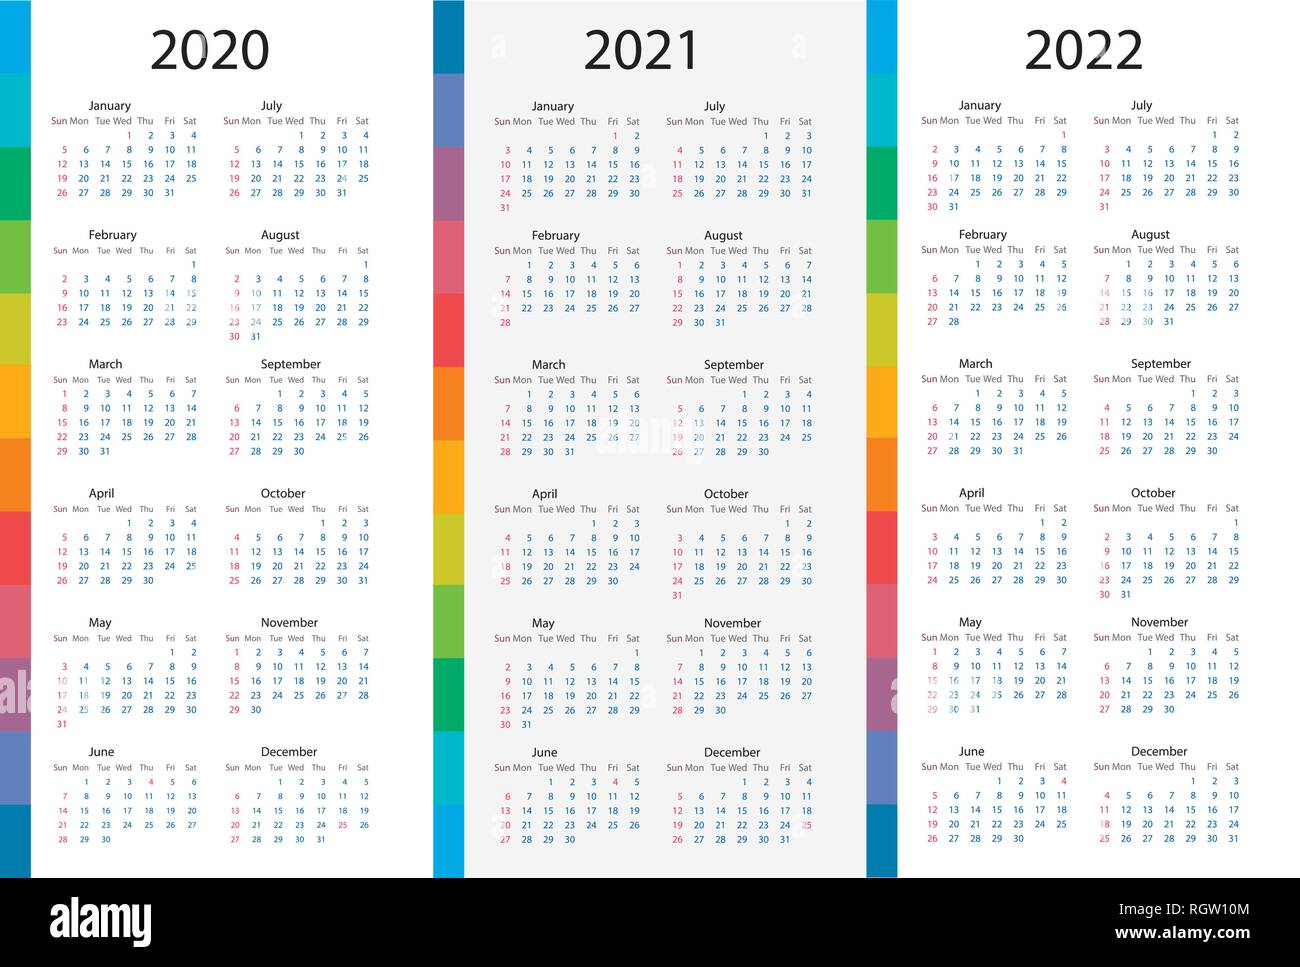 Calendar template set for 2020, 2021, 2022 years. Week starts on